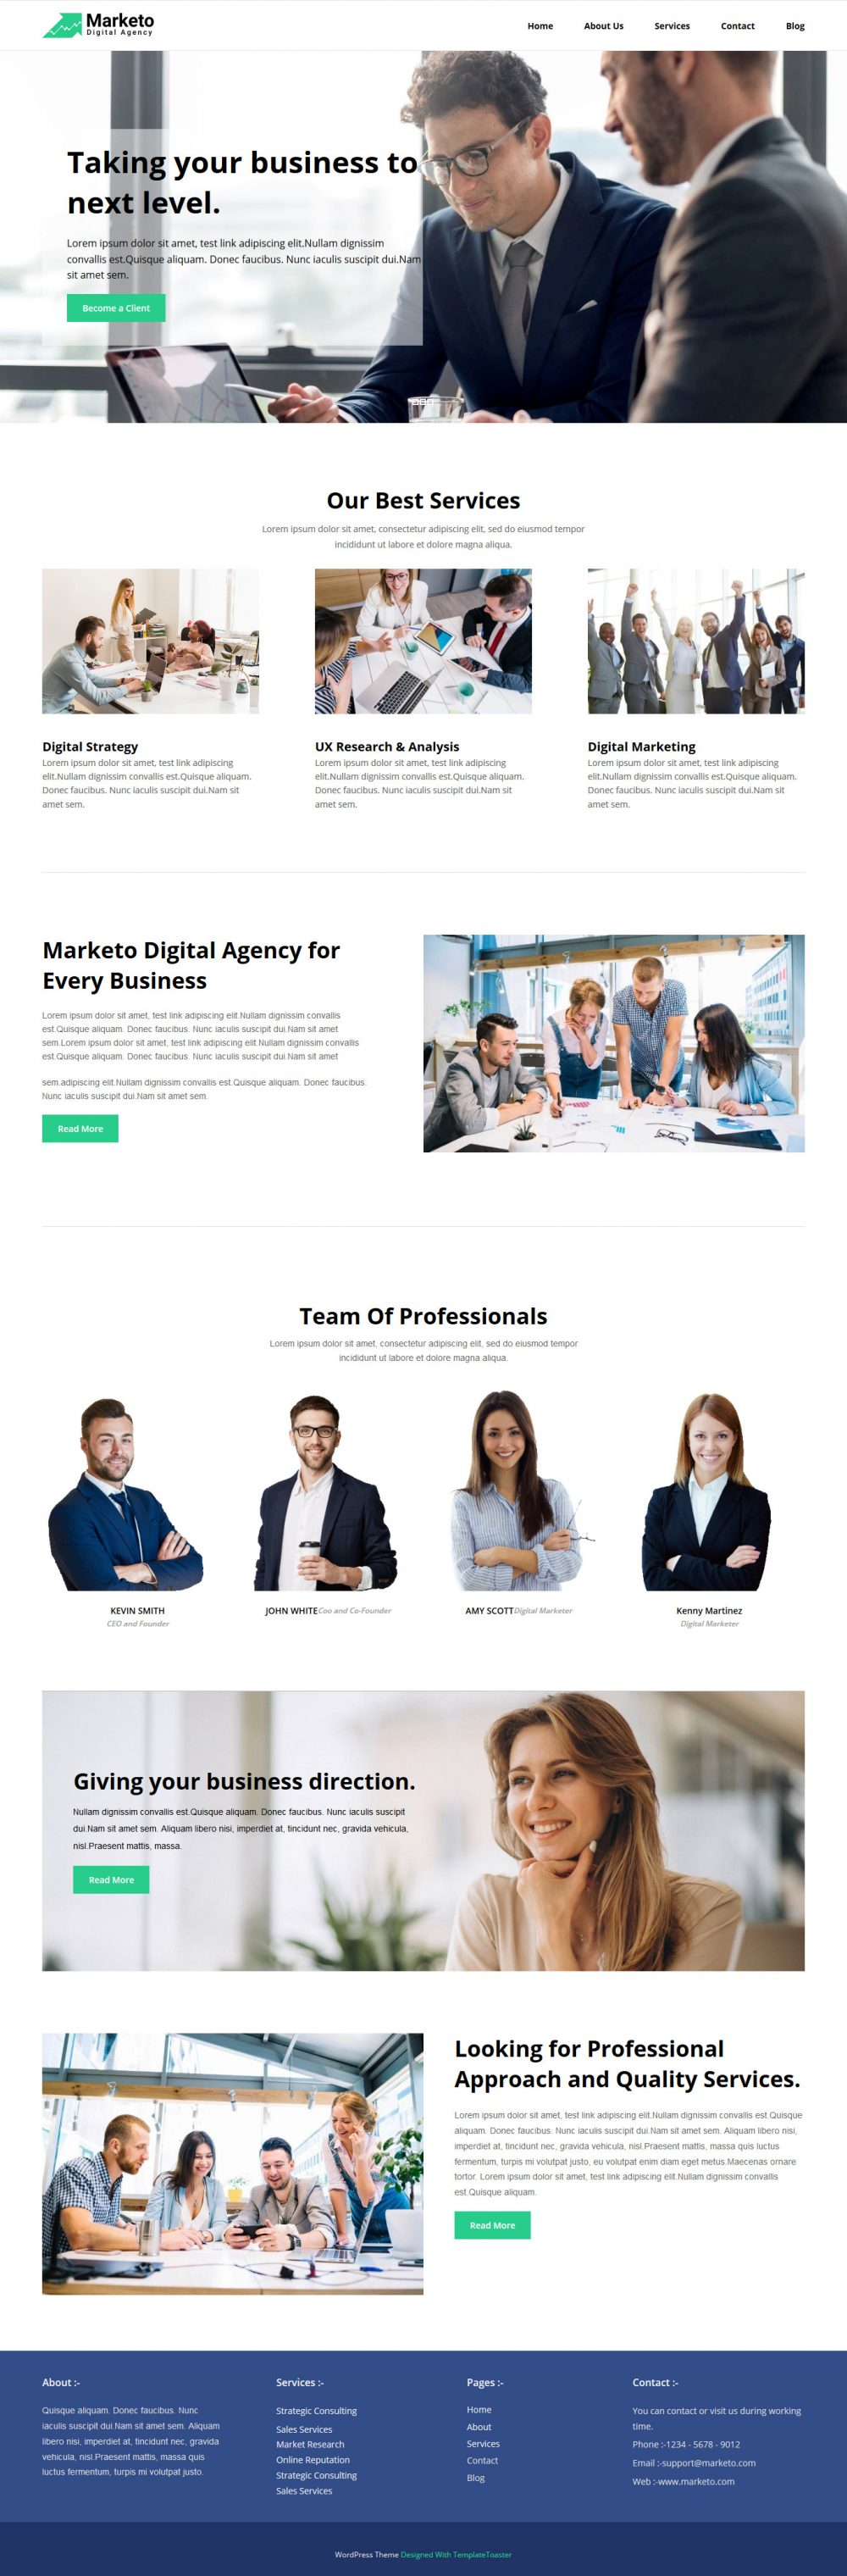 Marketo Marketing Consultancy Services Free WordPress Theme